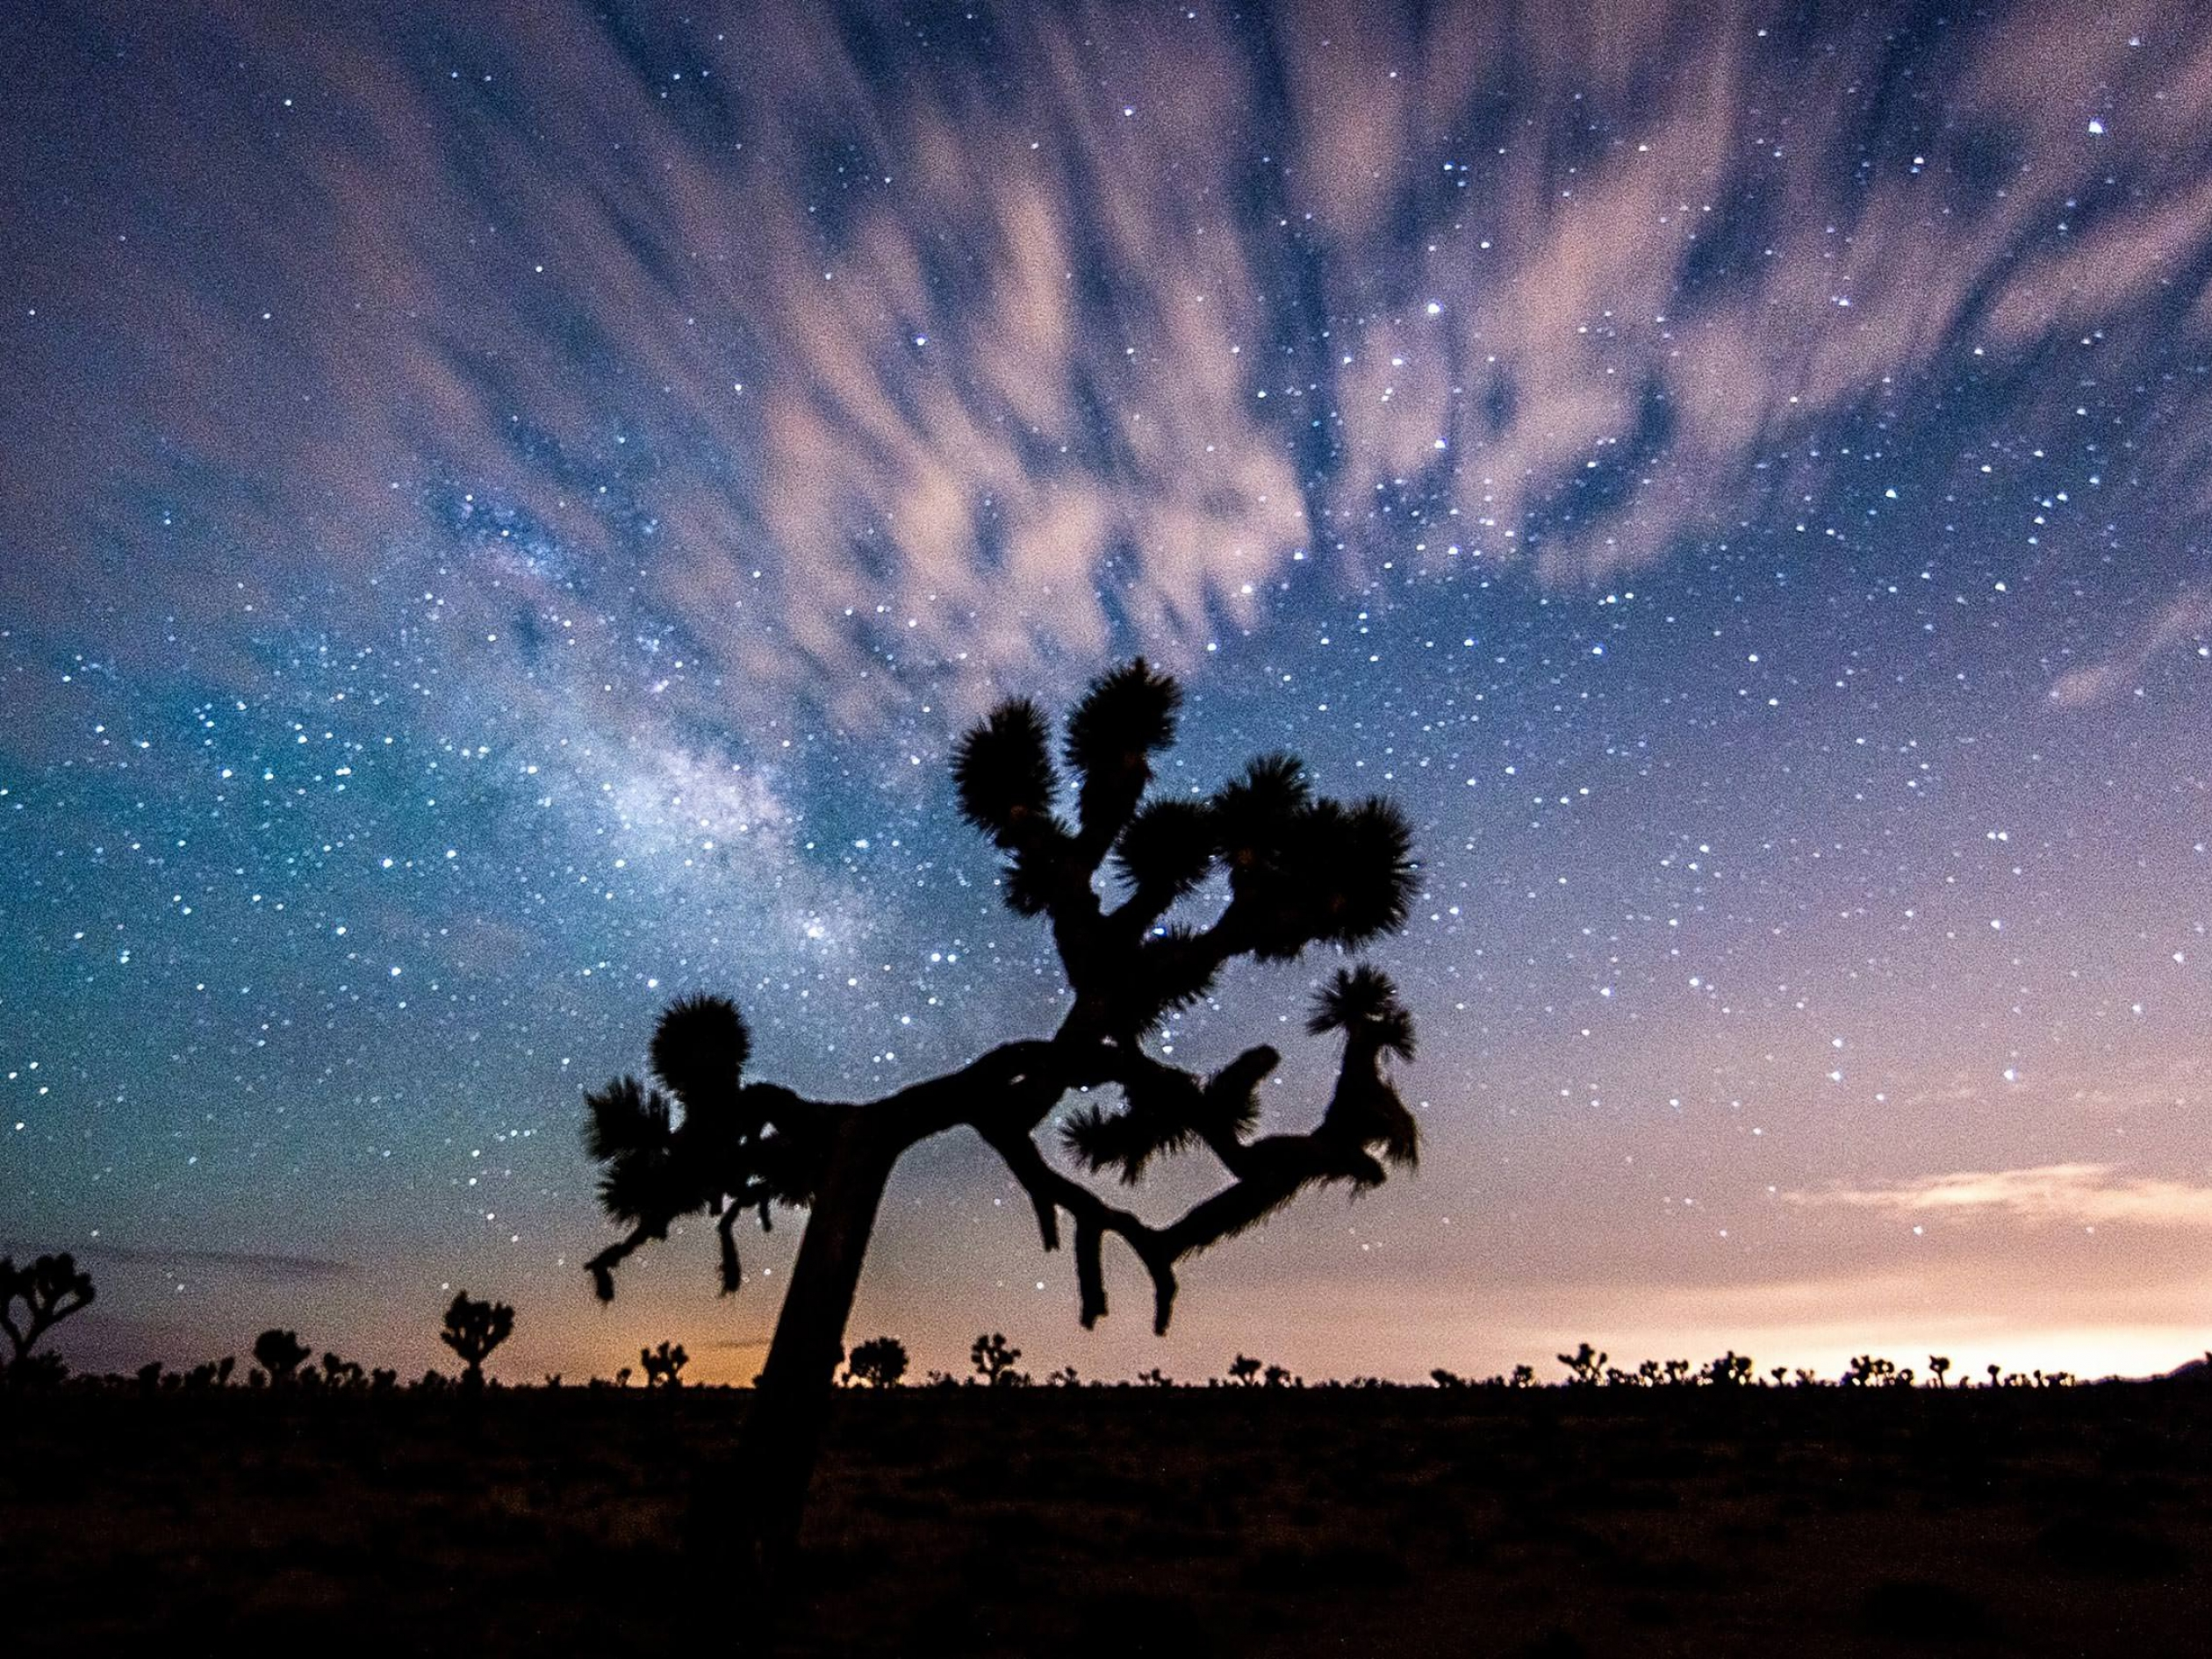 Starry sky in Joshua Tree National Park